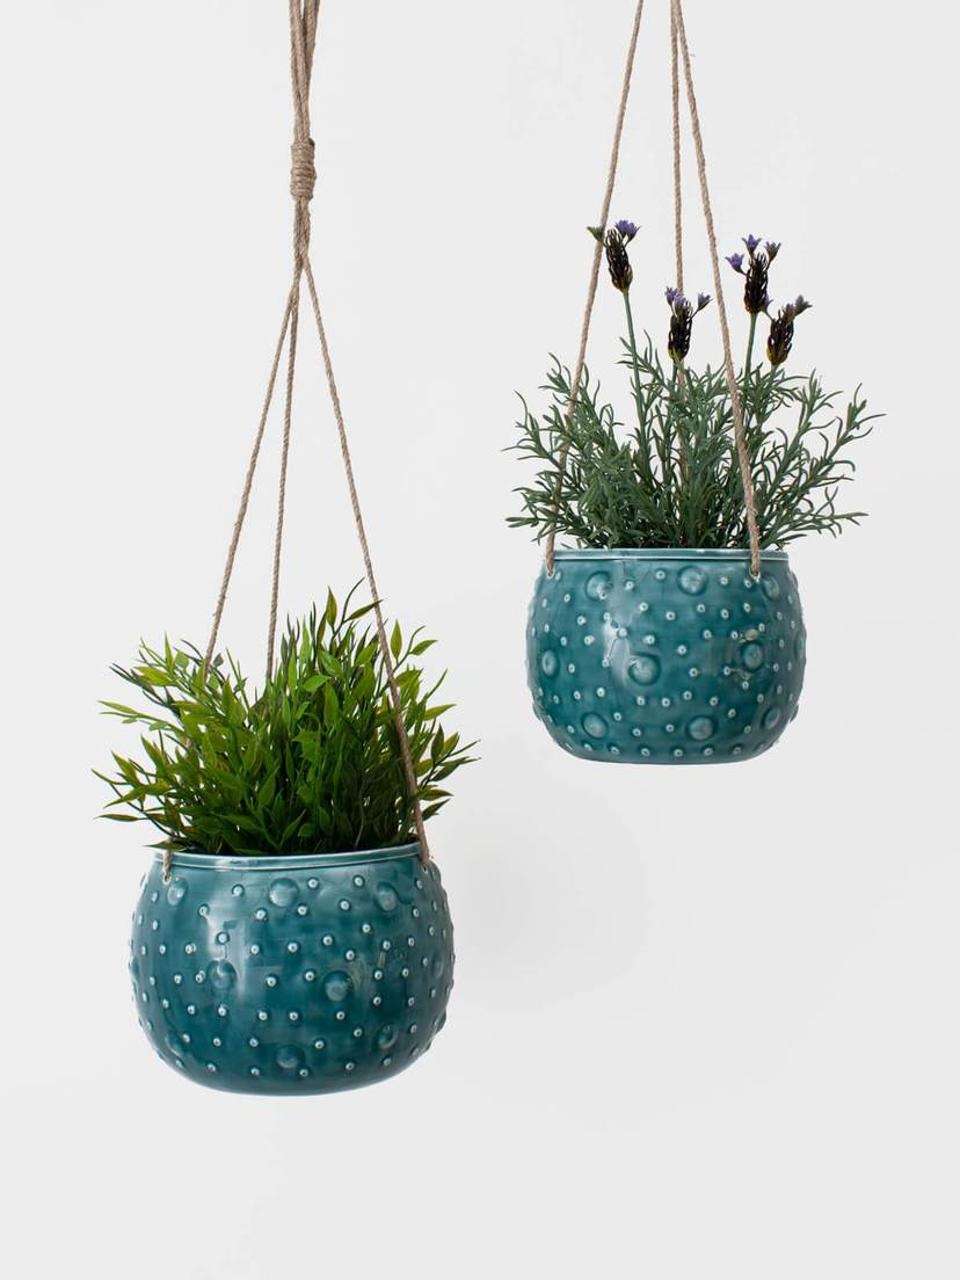 A pair of enamel hanging baskets with plants by international vendor Bohemia Design.